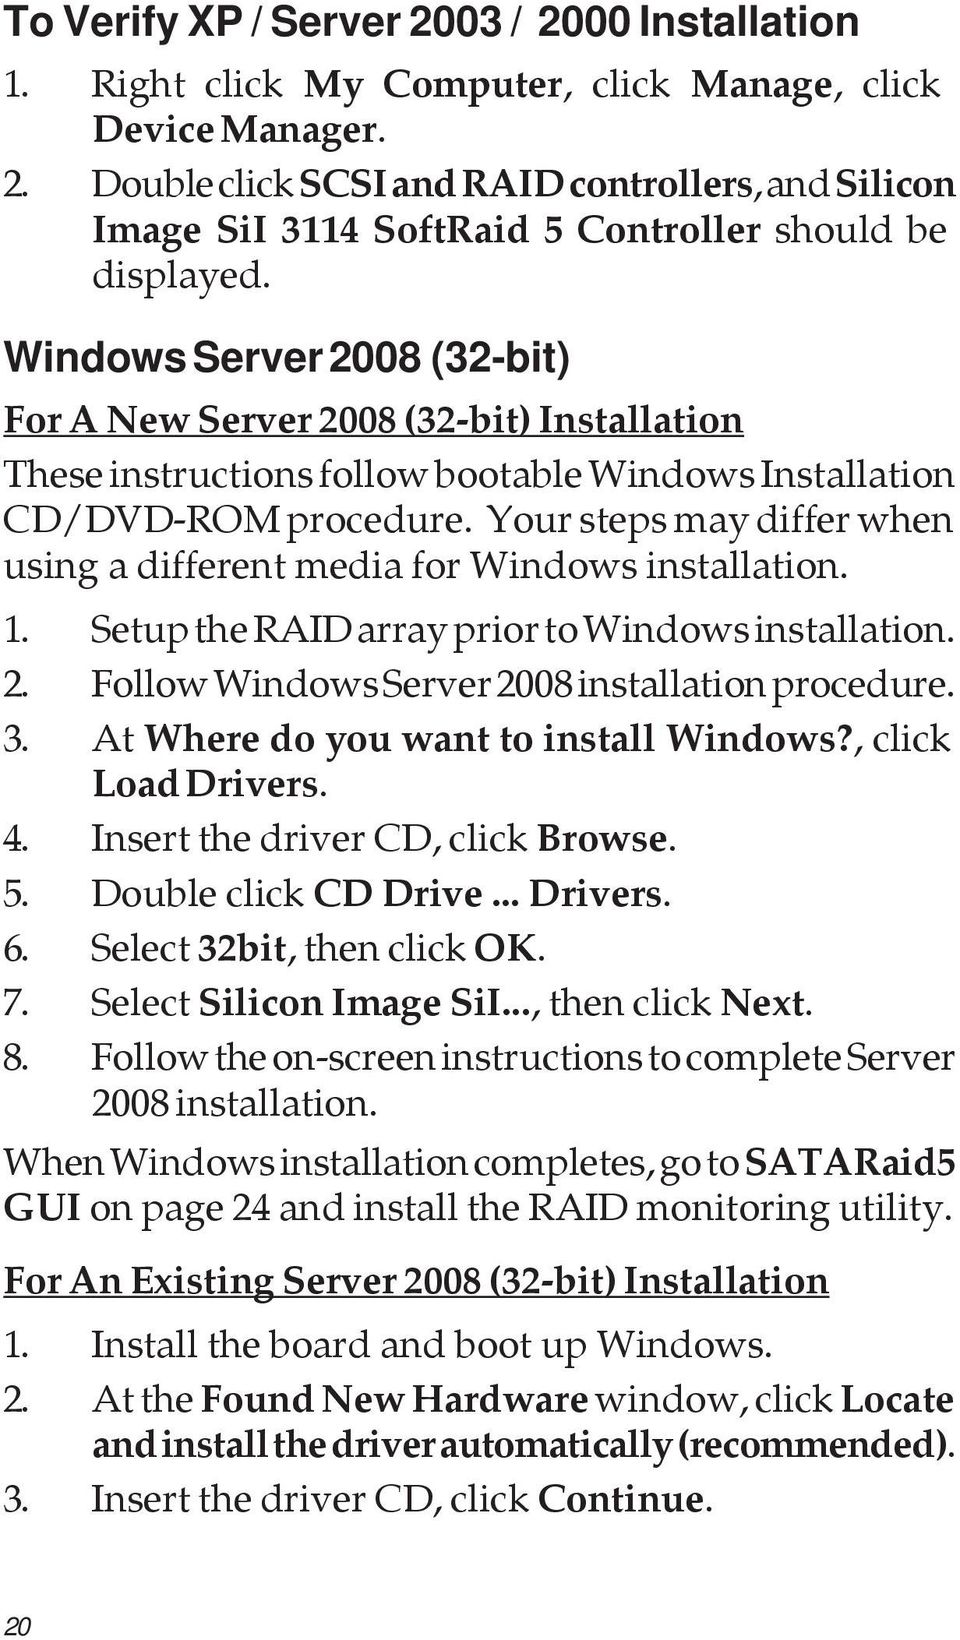 Your steps may differ when using a different media for Windows installation. 1. Setup the RAID array prior to Windows installation. 2. Follow Windows Server 2008 installation procedure. 3.